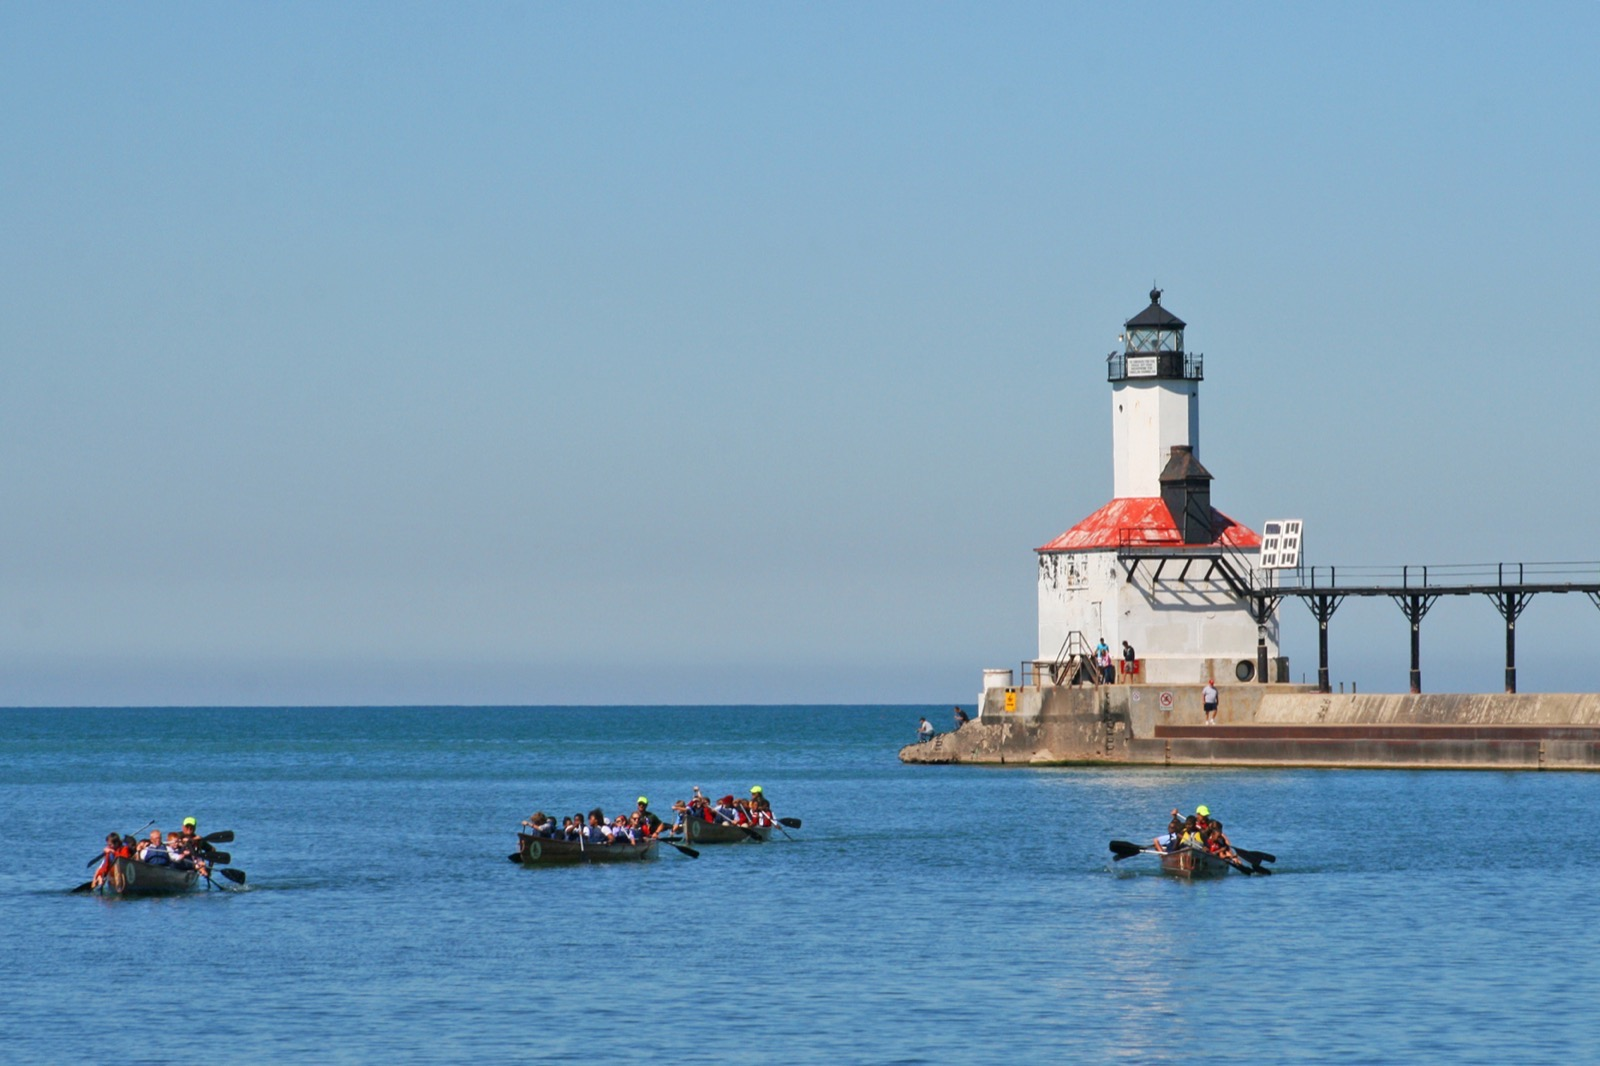 four canoes head back towards the landing, paddling away from the lighthouse